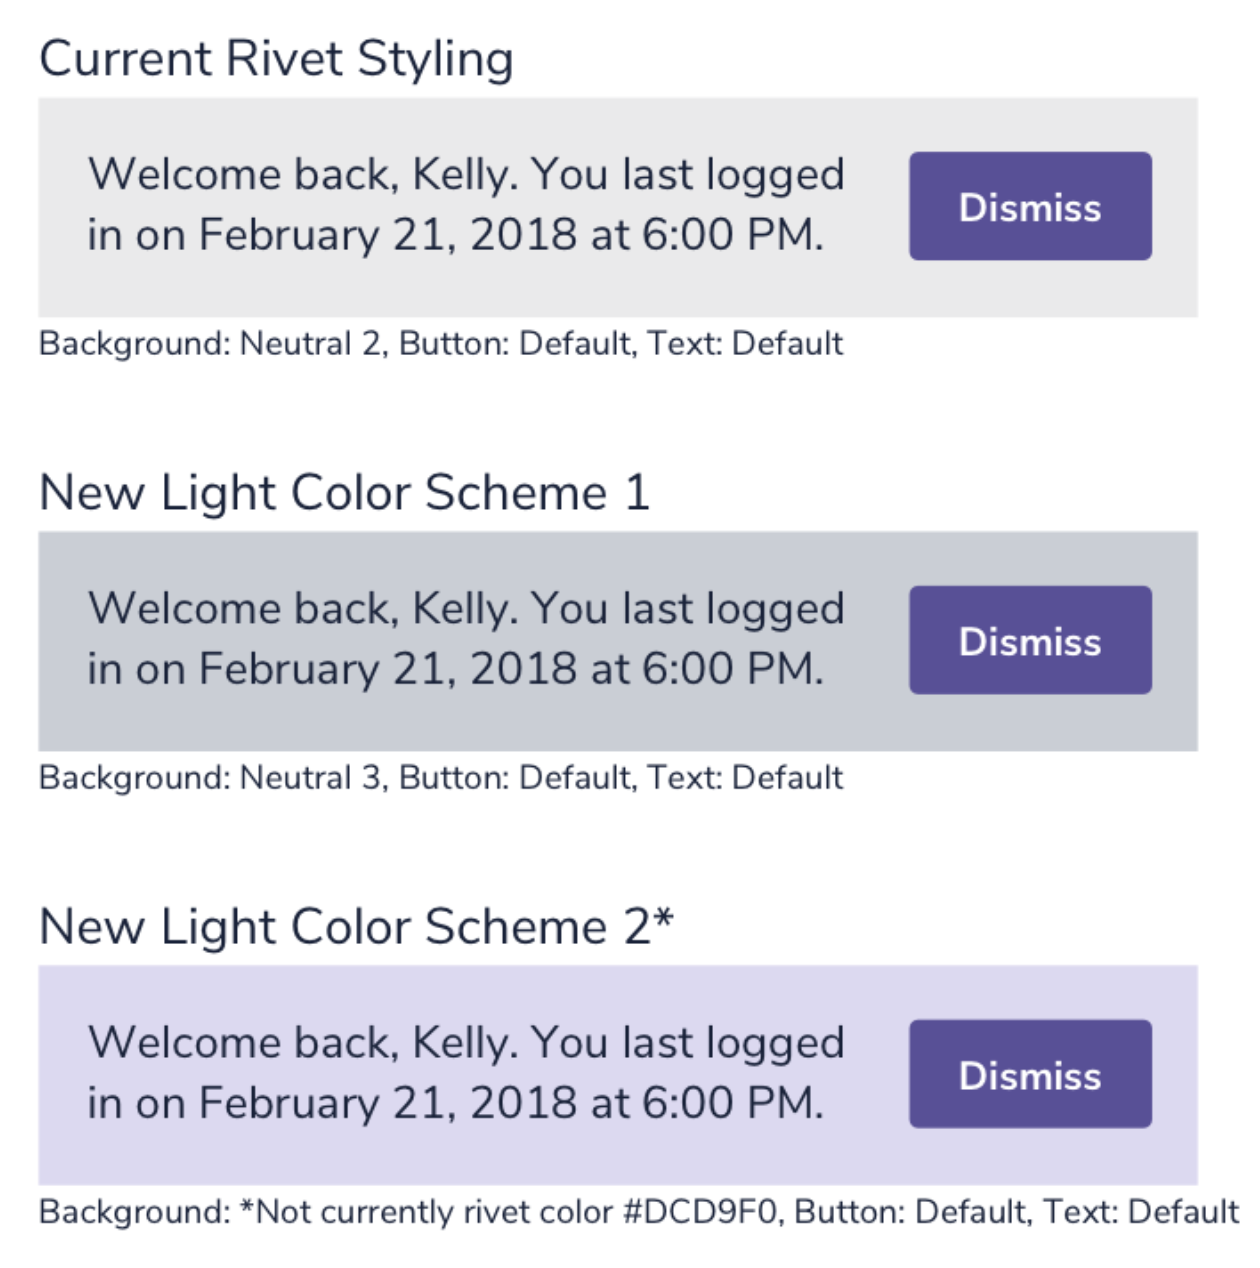 Examples of three different toast notifications all displaying the same generic welcome message. Each has a different combination of colors on the button, text, and background